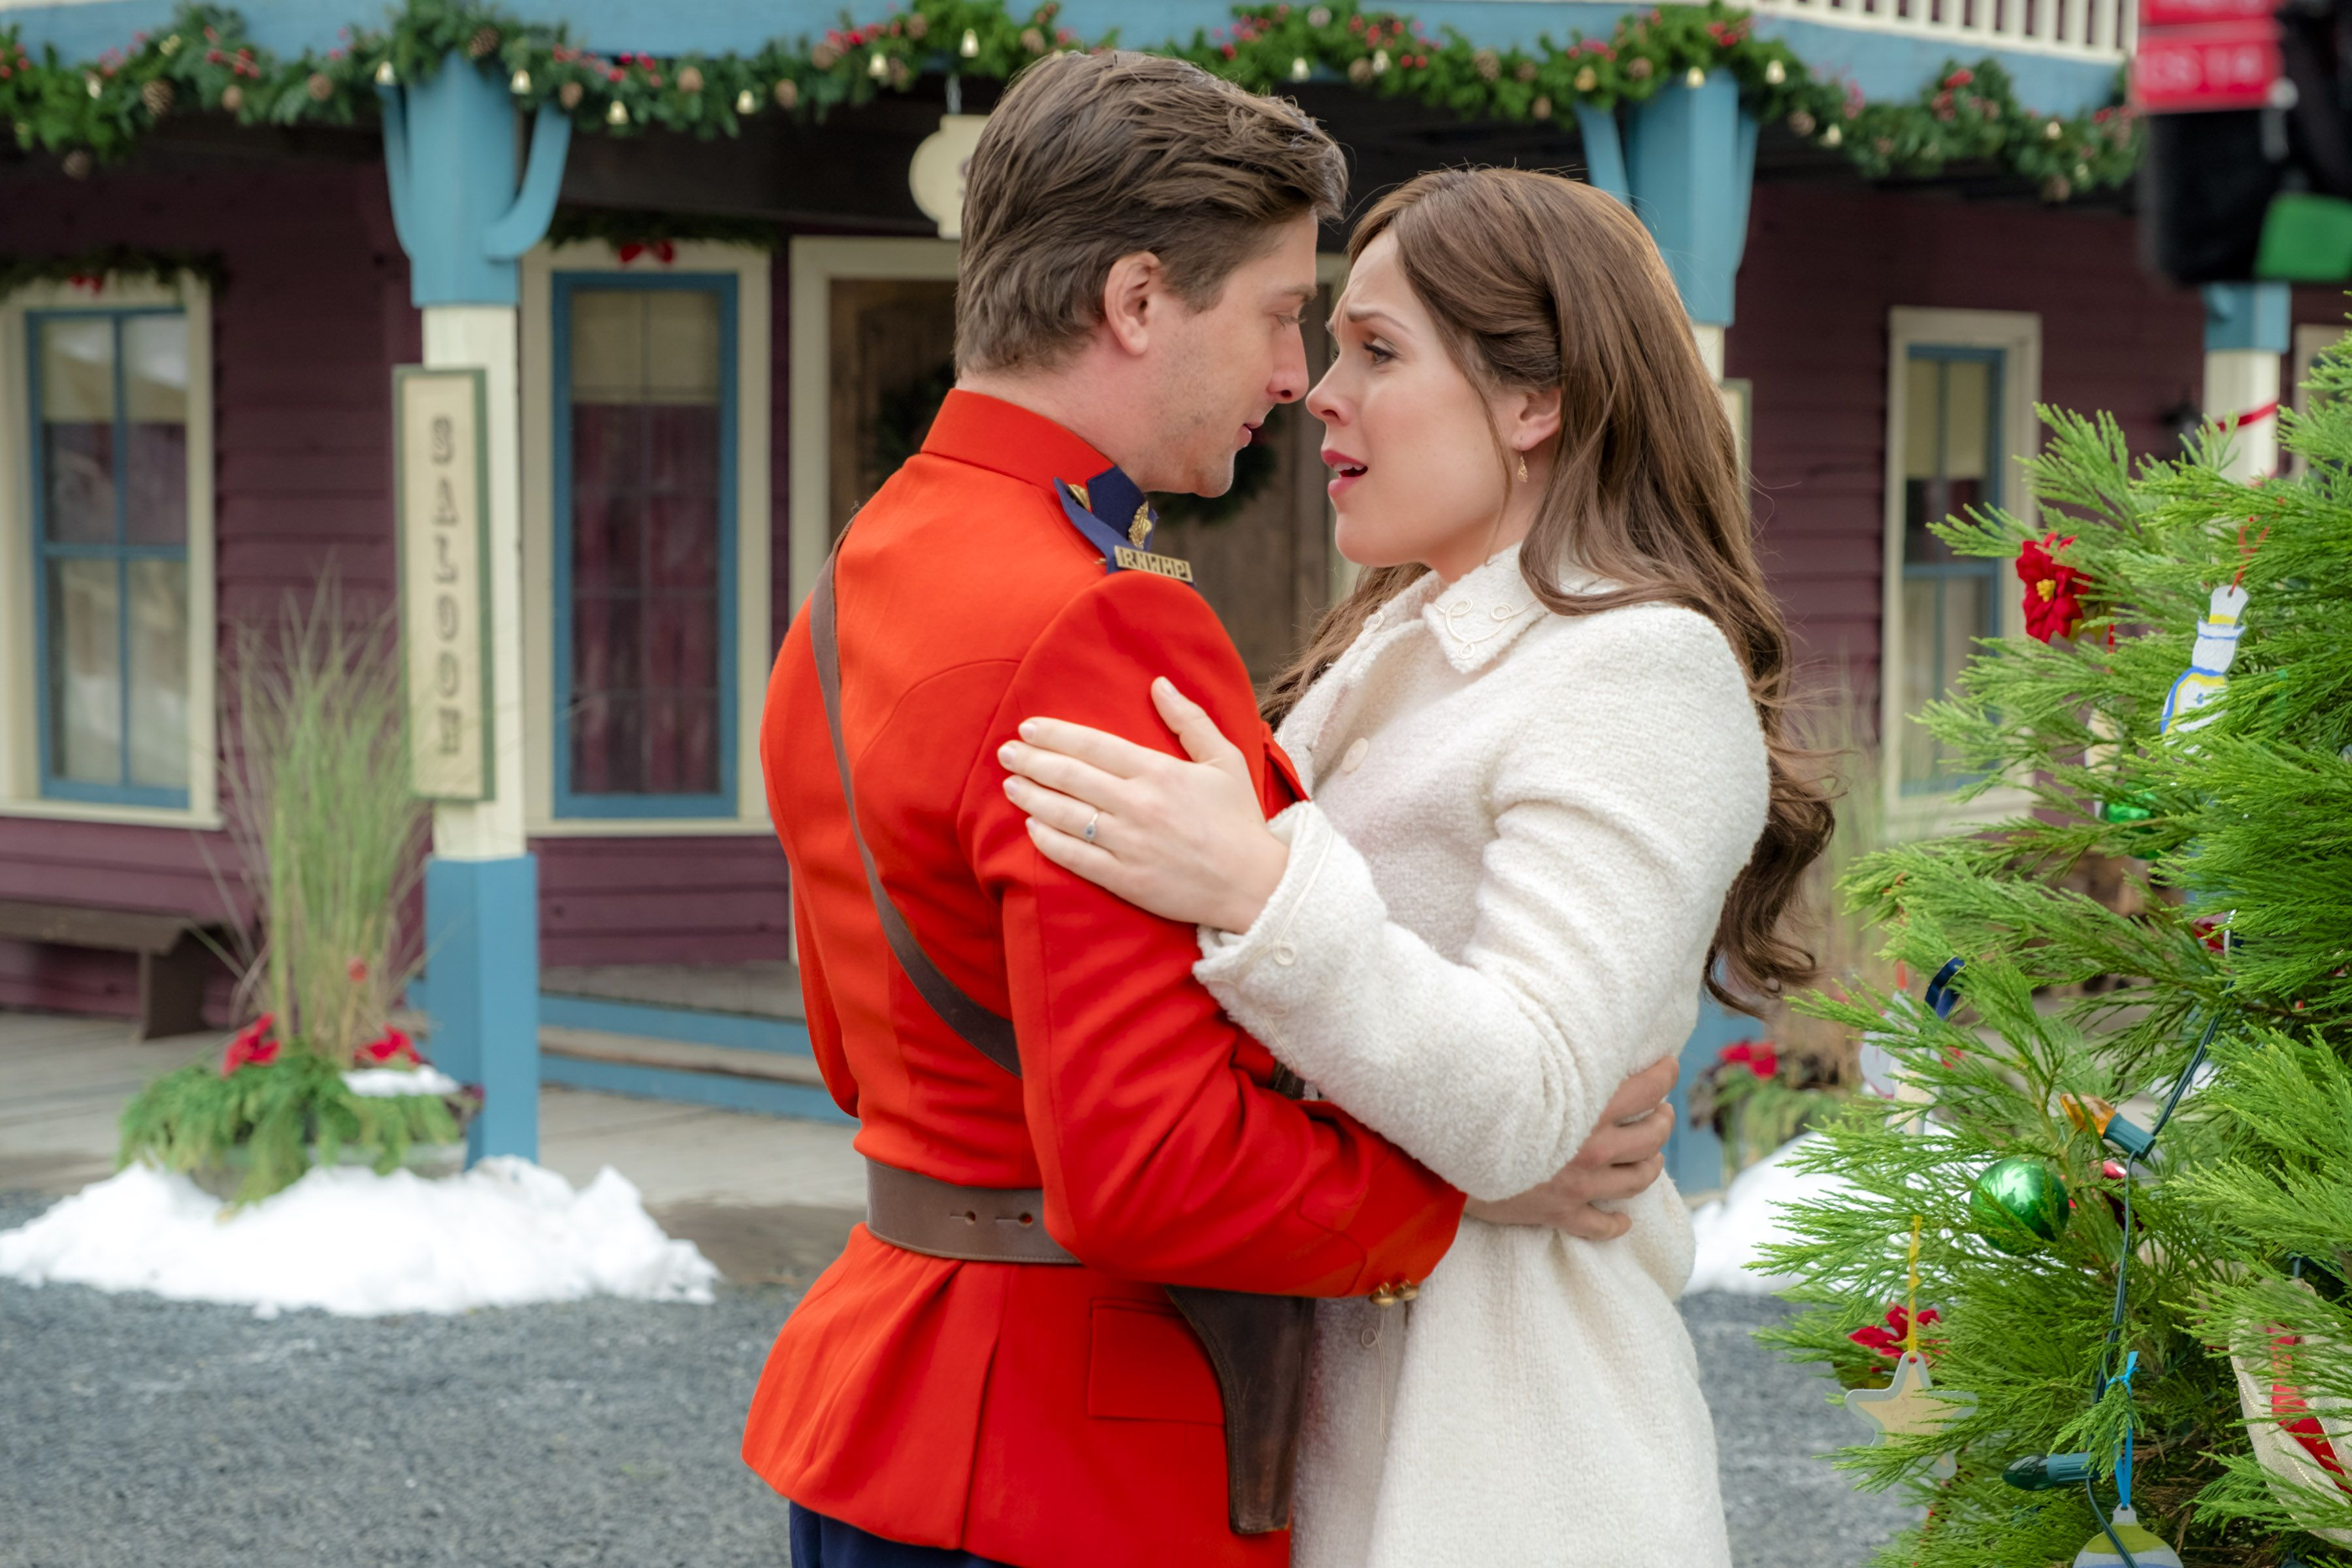 When Calls The Heart Christmas Special 2020 Online Free Why Did Daniel Lissing Leave When Calls the Heart?